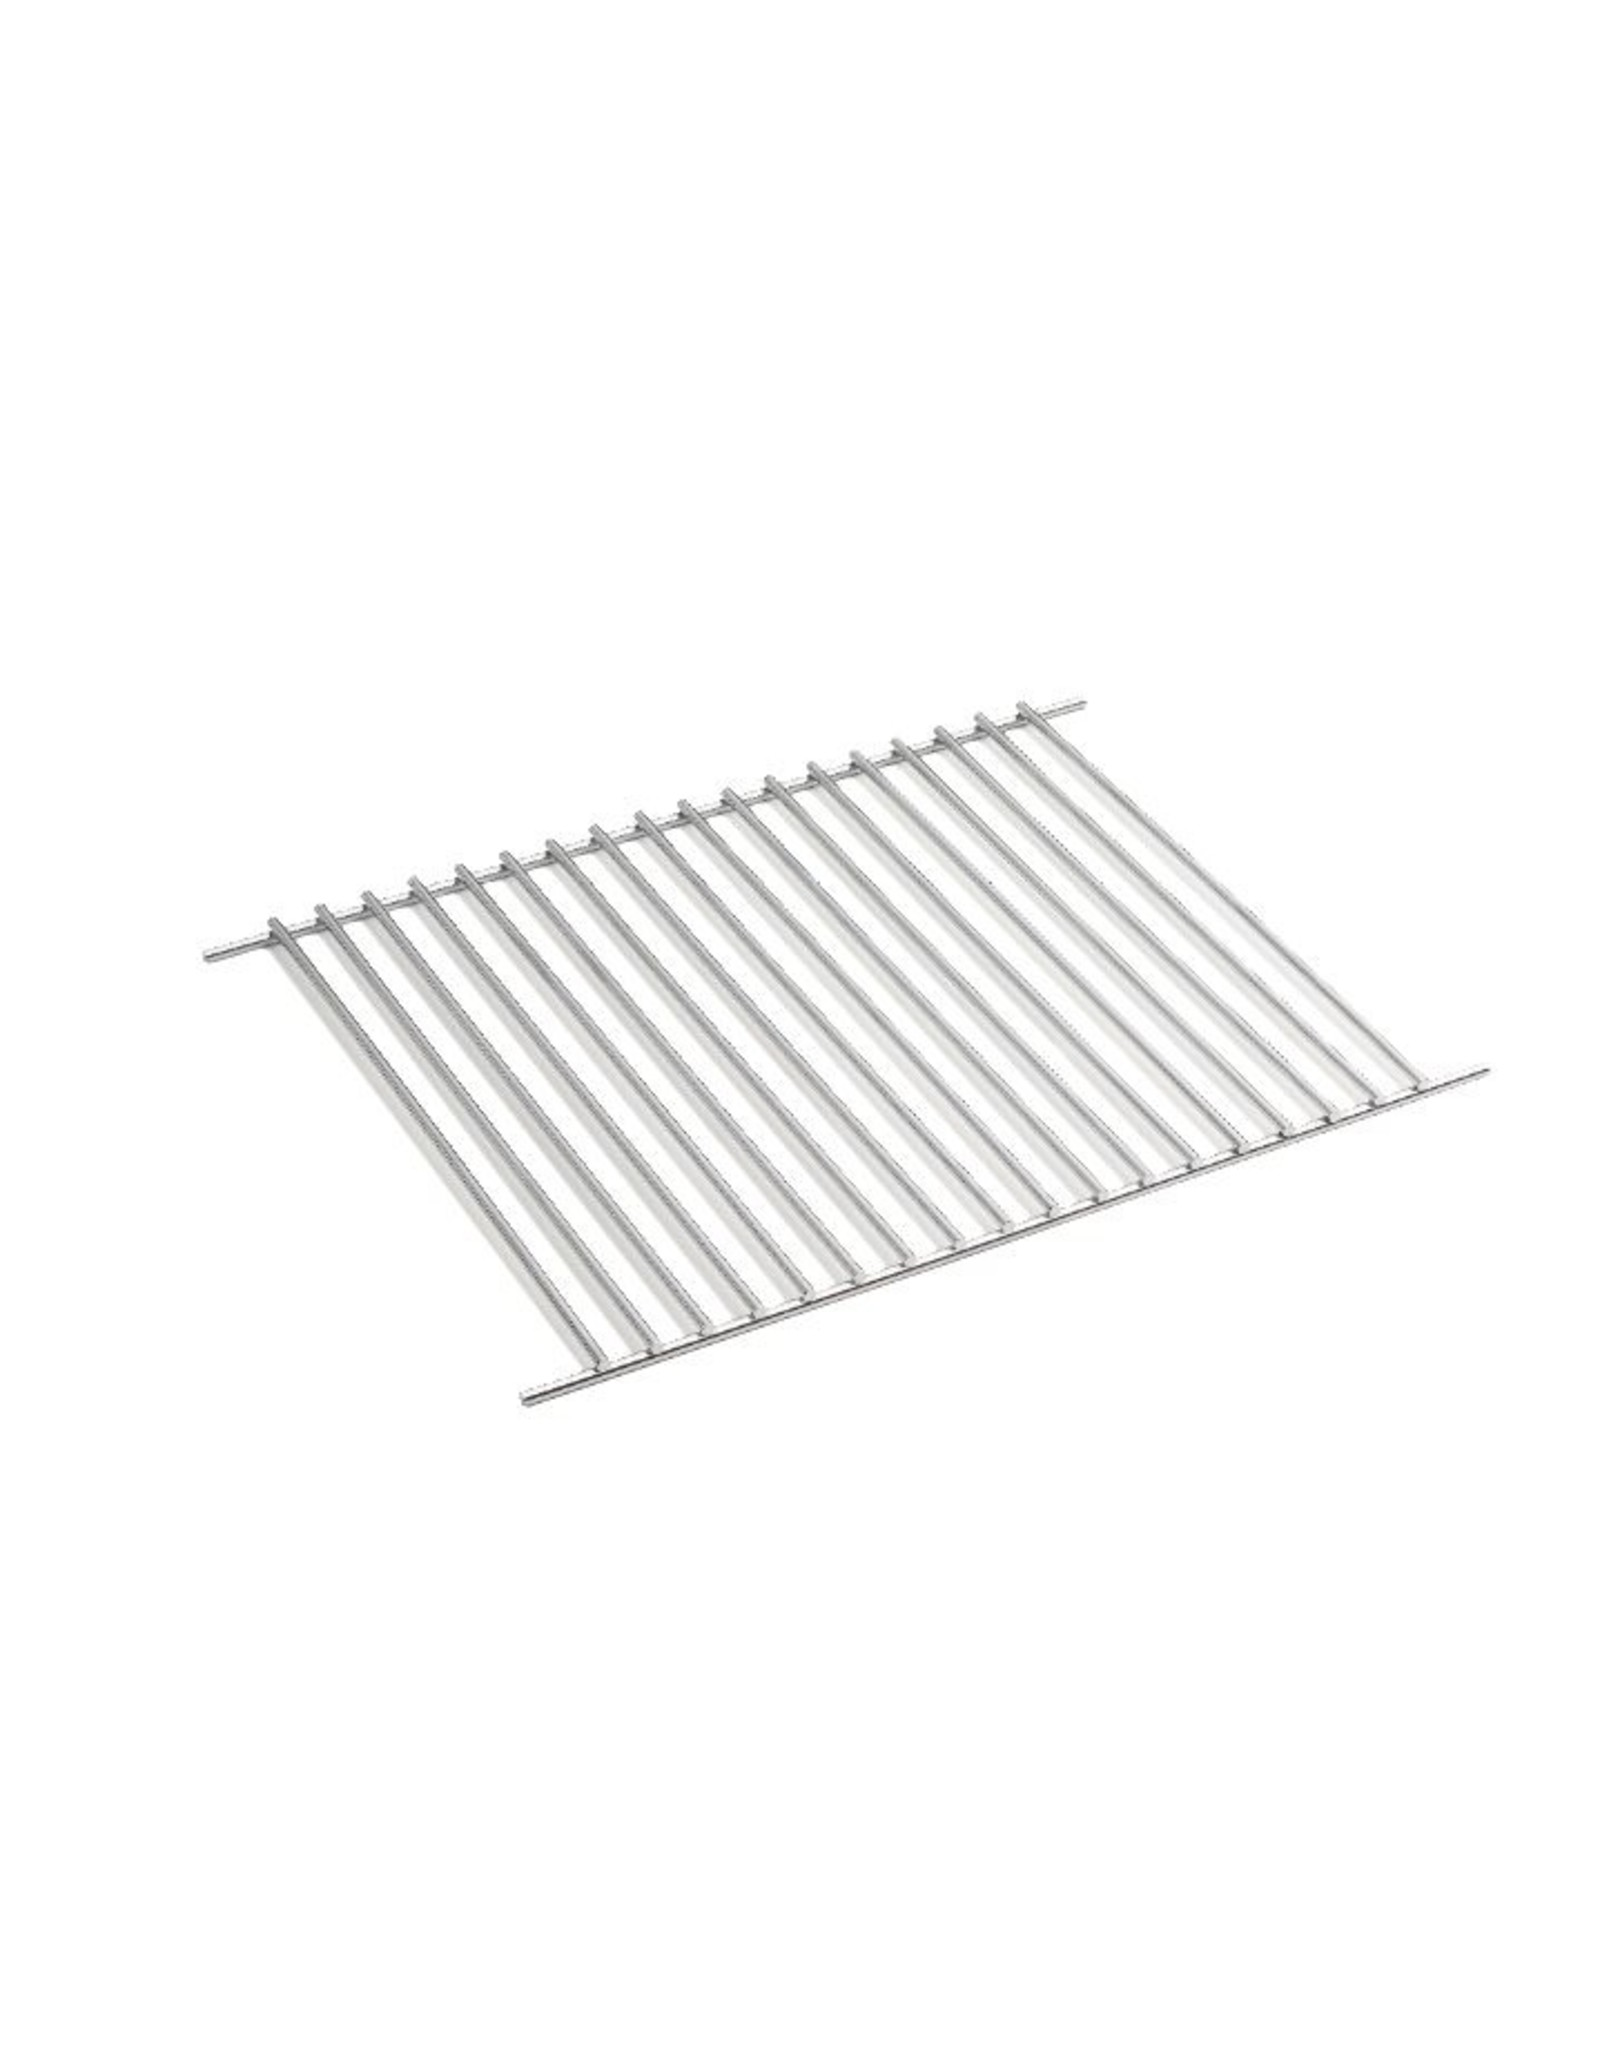 Crate Vuurkorf Grillrooster